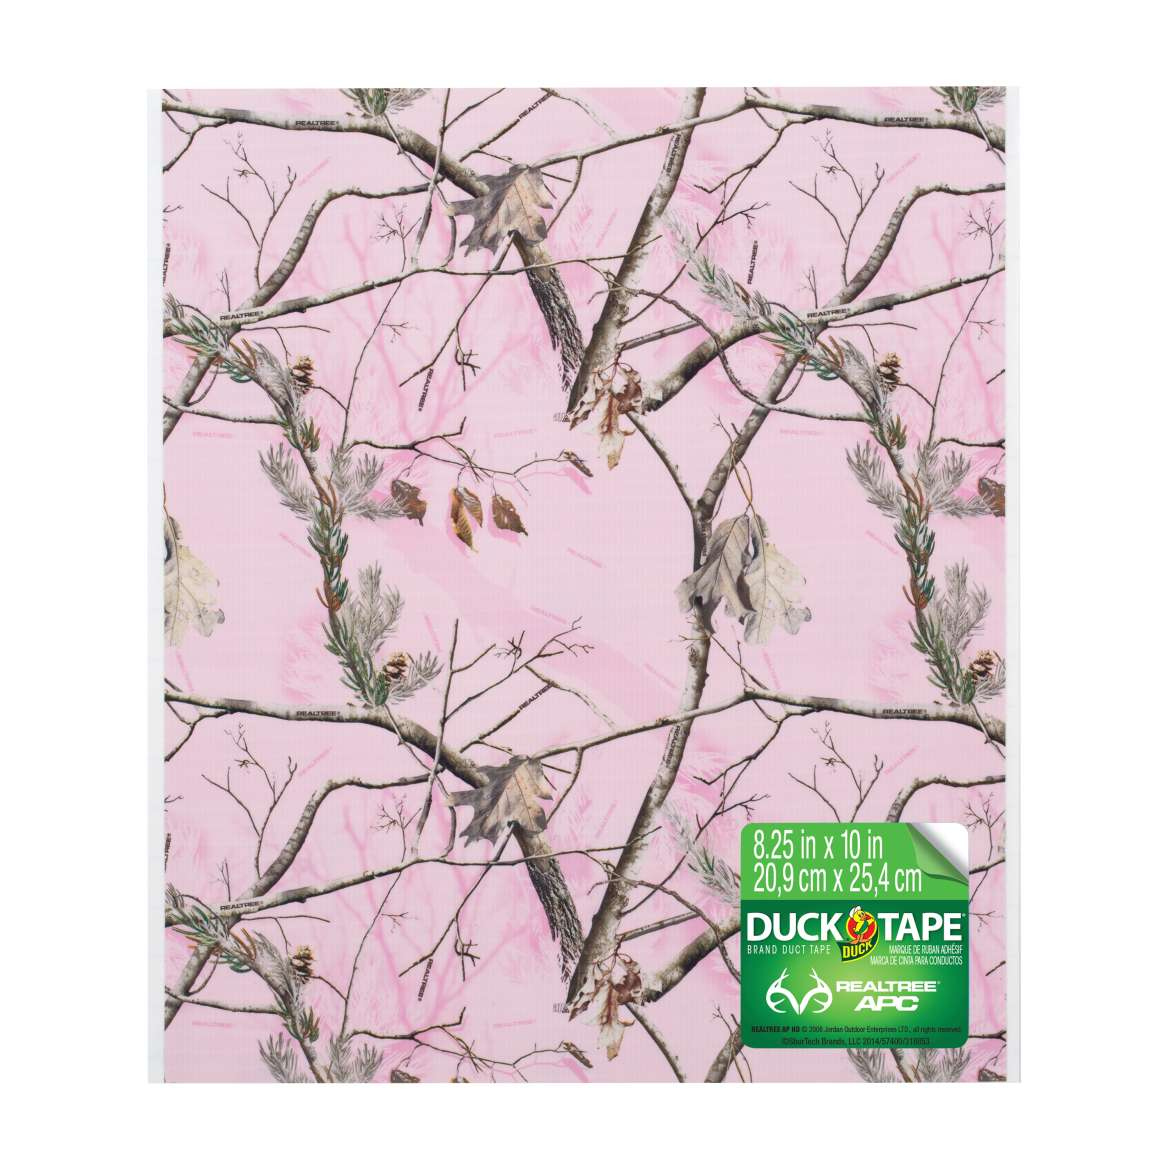 Printed Duck Tape® Sheets - Realtree® Pink Camo, 6 pk, 8.25 in. x 10 in. Image